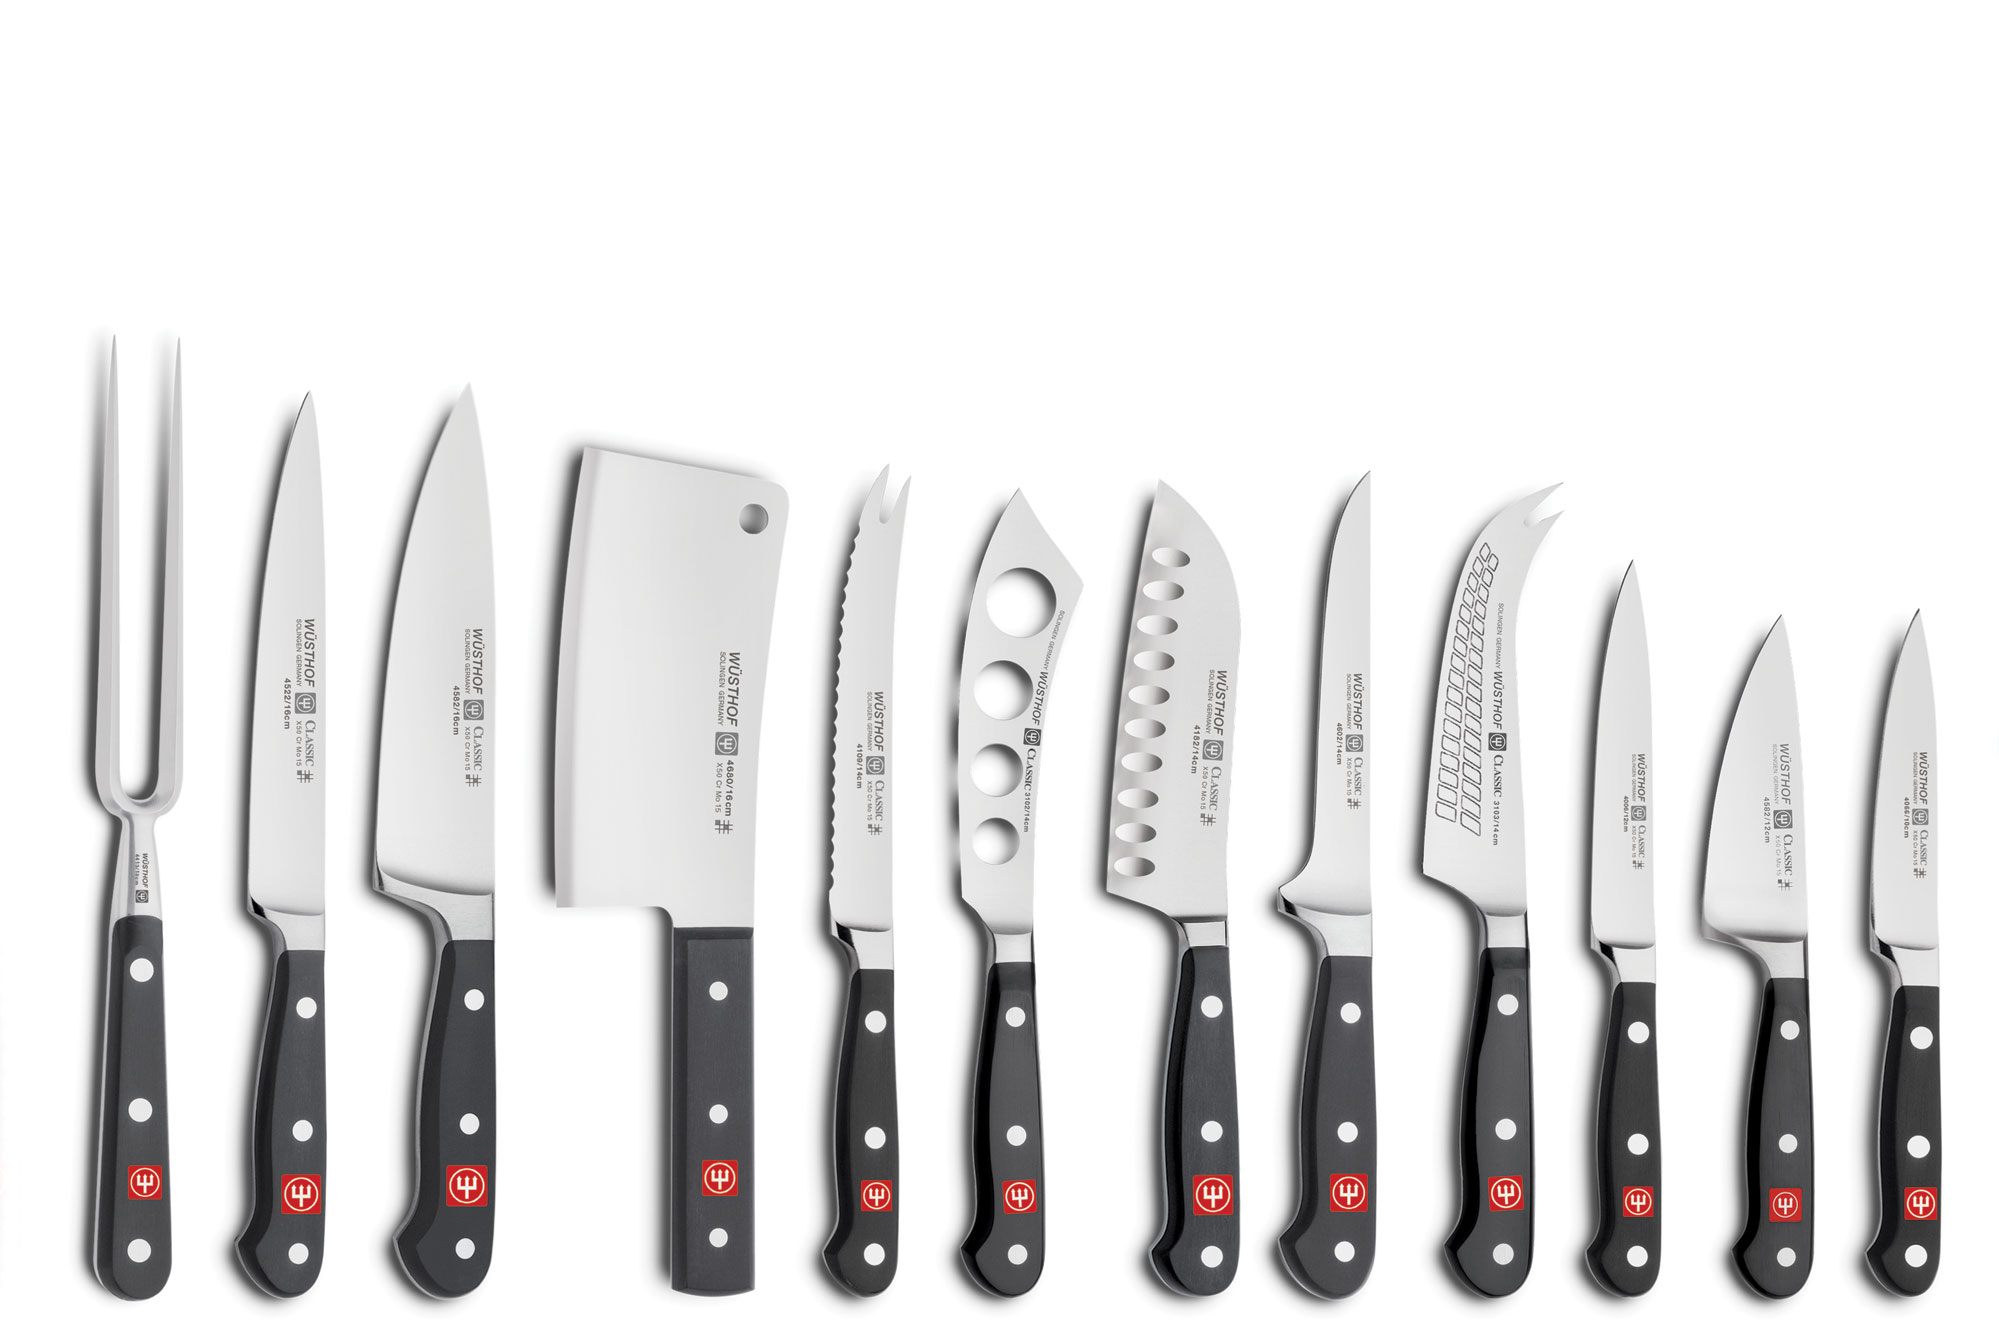 Wusthof Classic Knife Block Set 36 Piece Cutlery And More